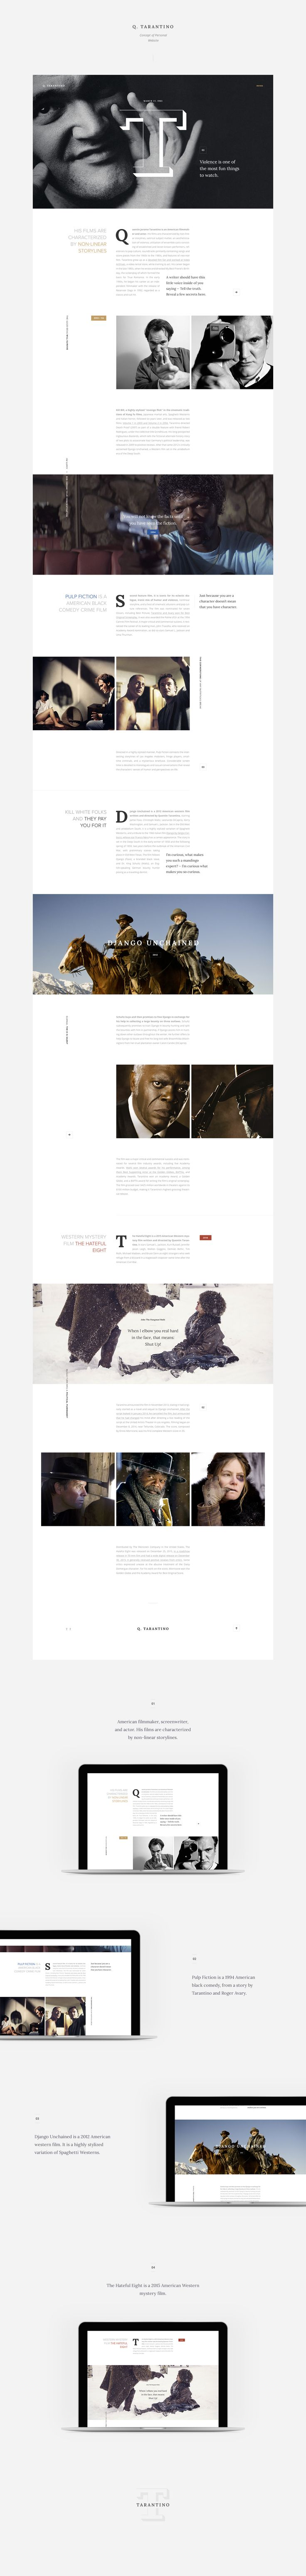 Q. Tarantino — Concept of Personal Website.